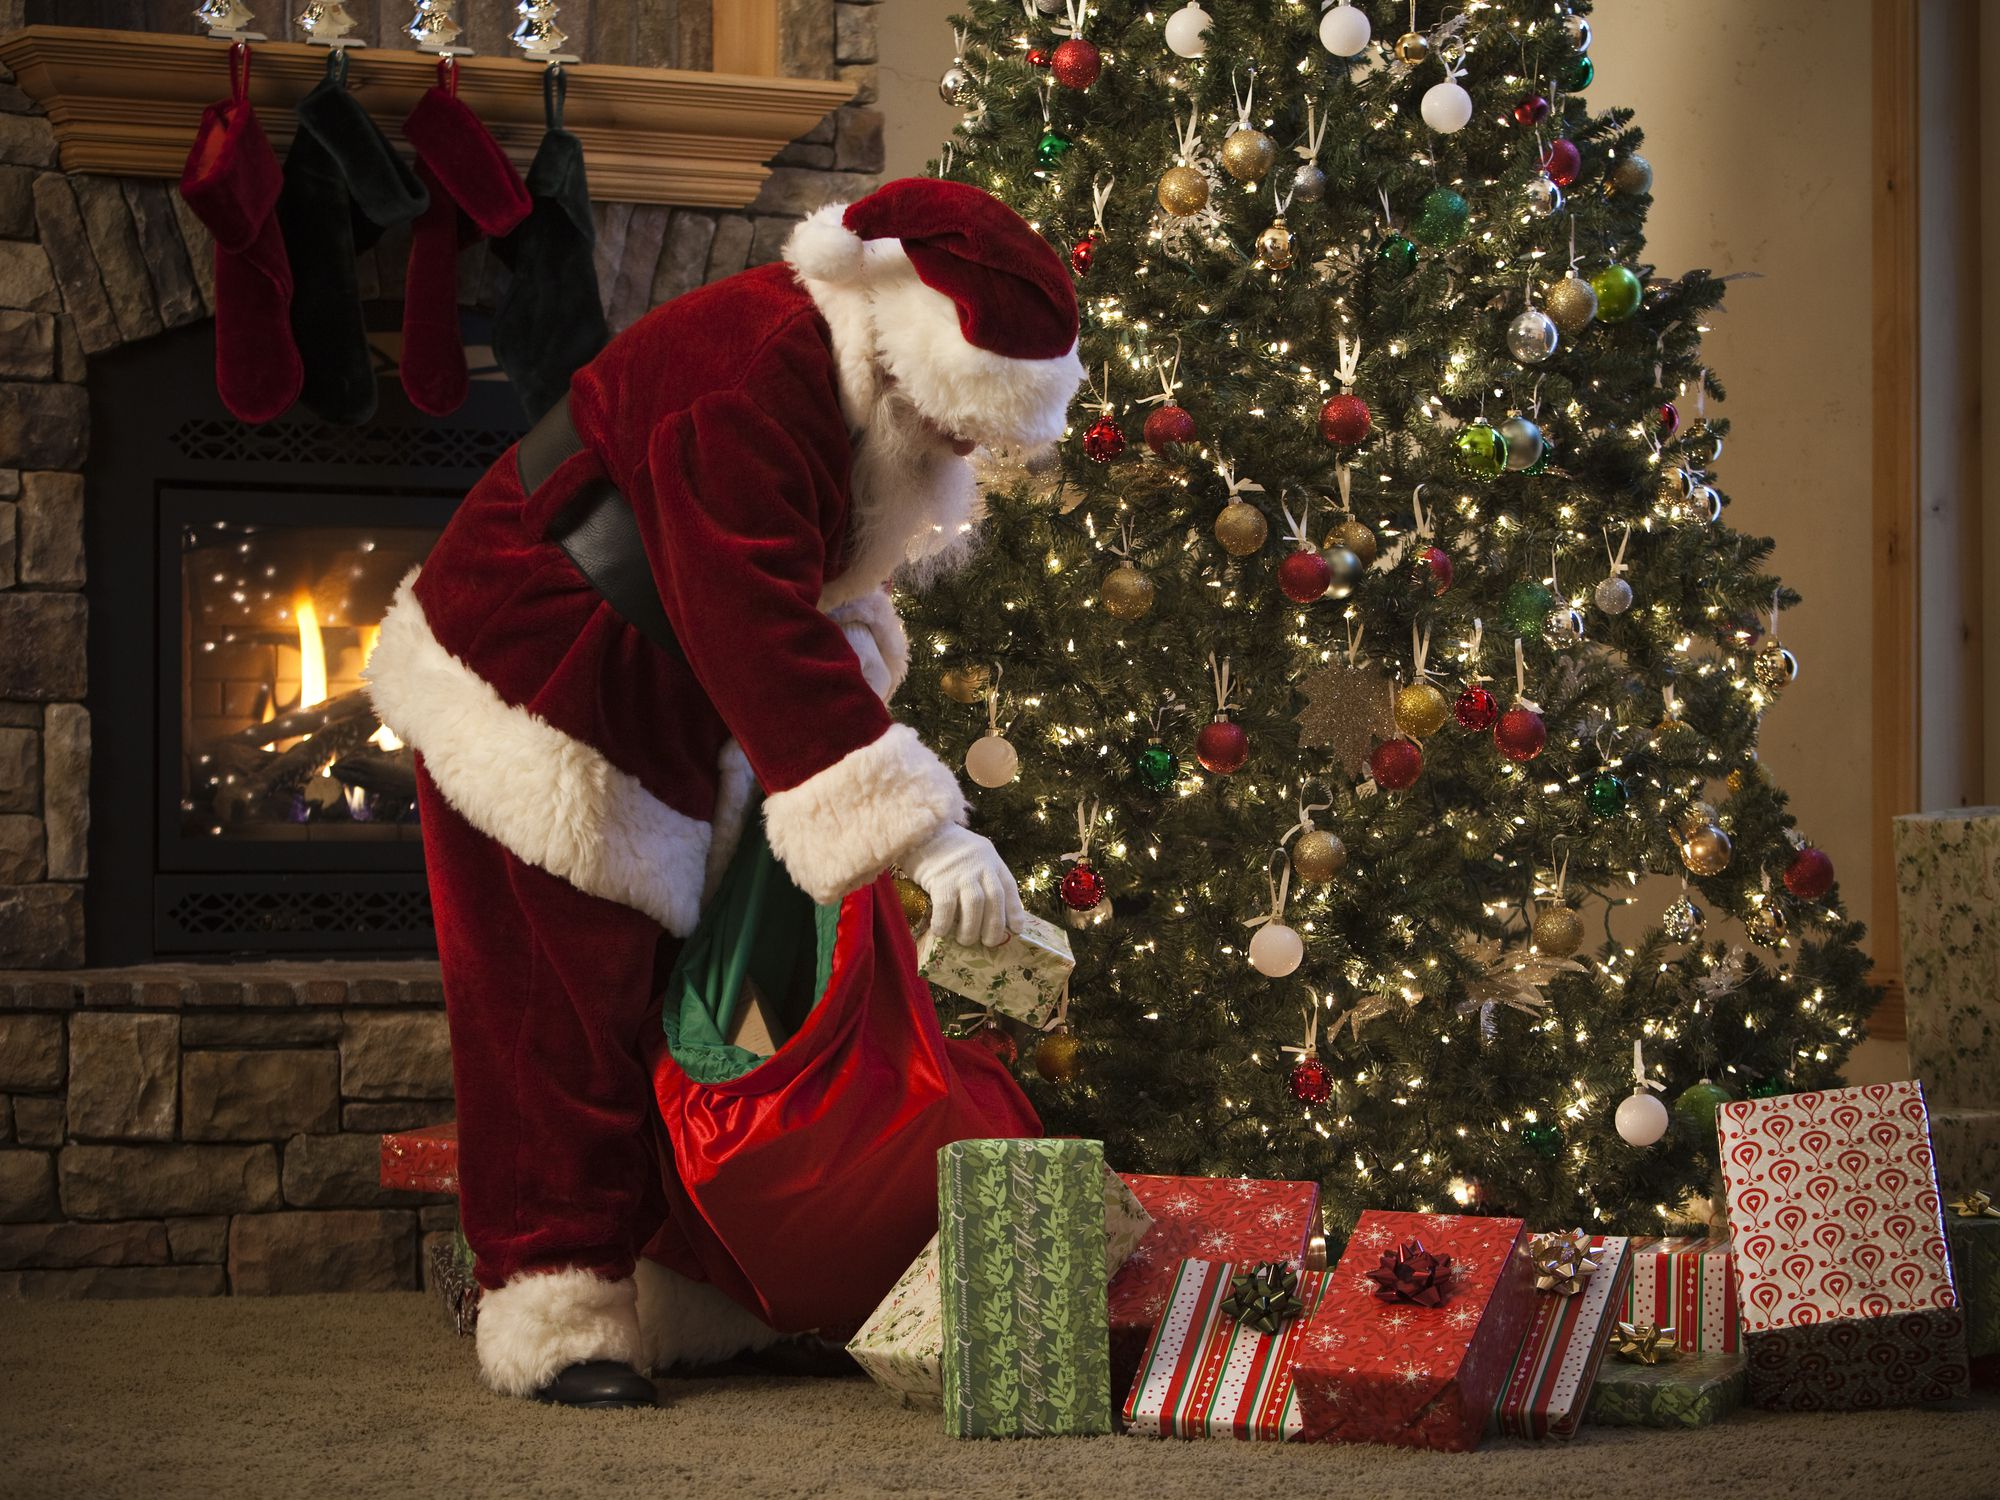 What Writers Say About Christmas and Santa Claus